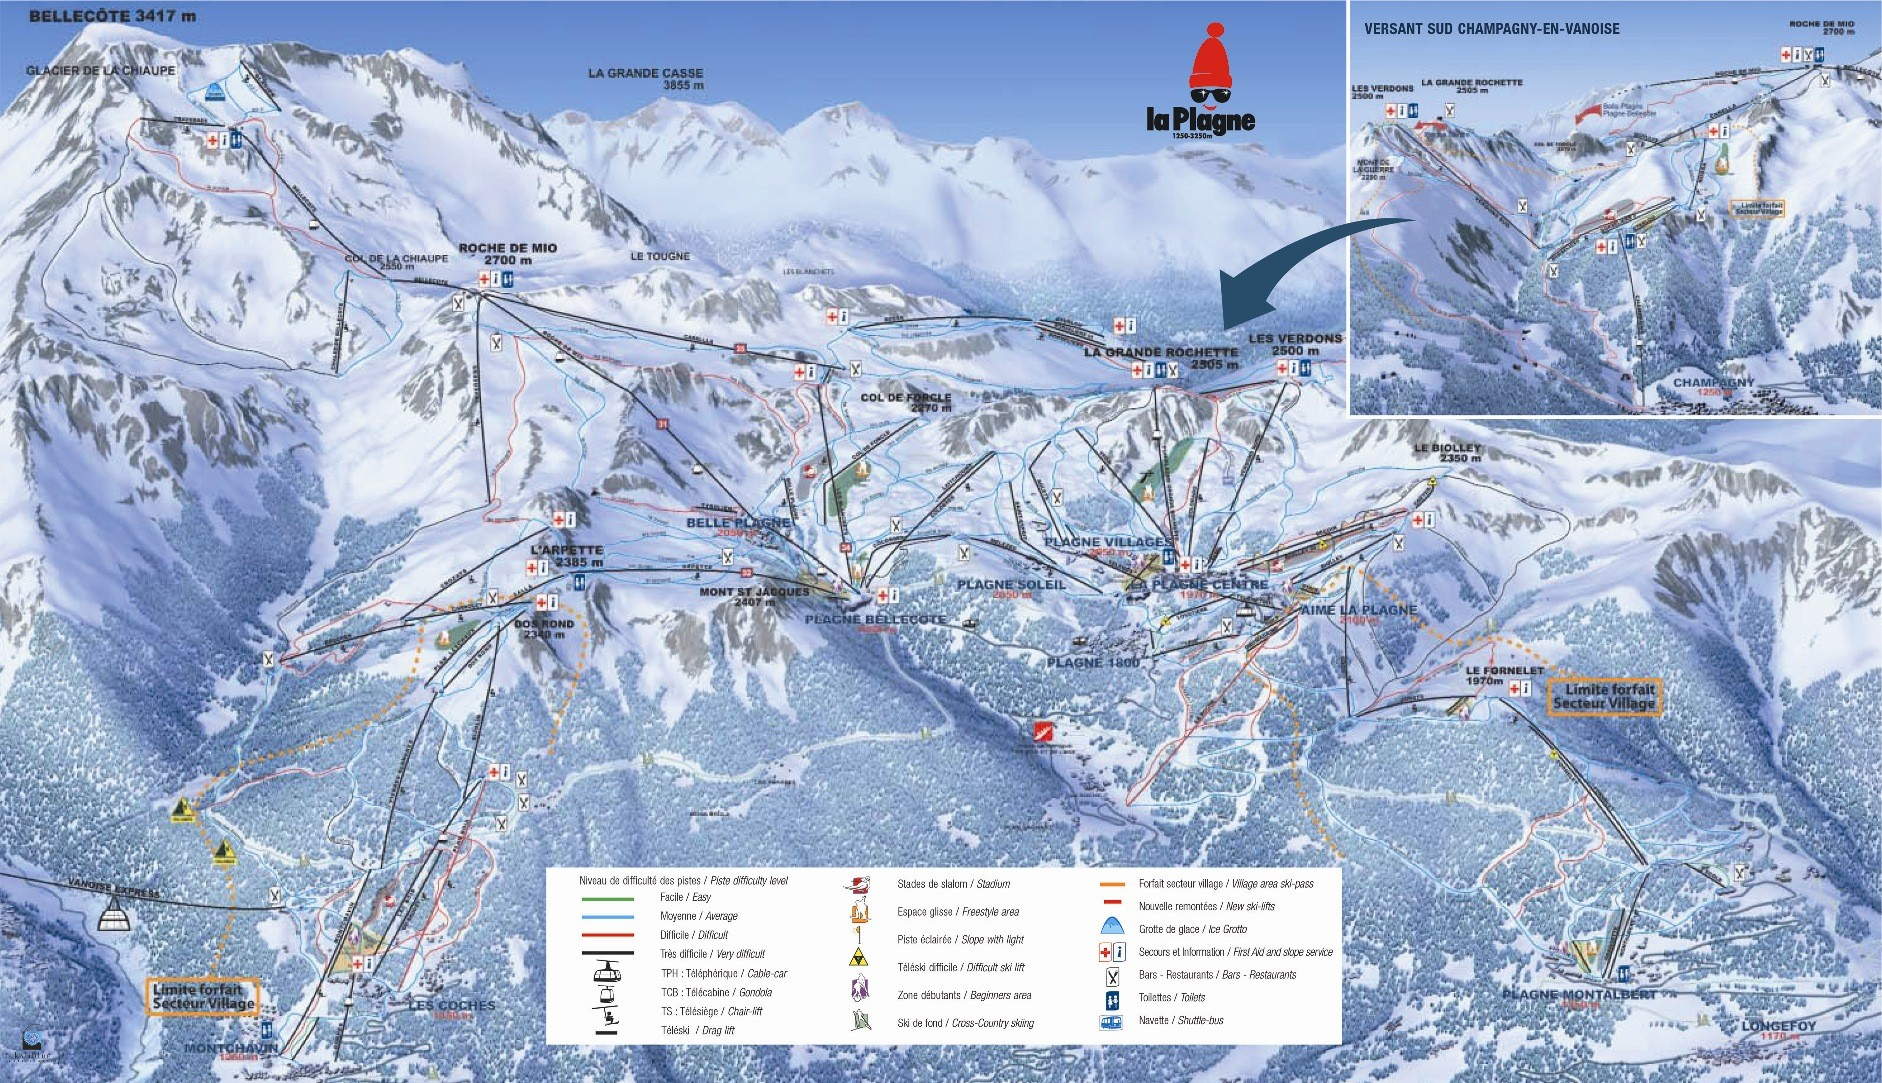 Champagny En Vanoise Trail Map Piste Map Panoramic